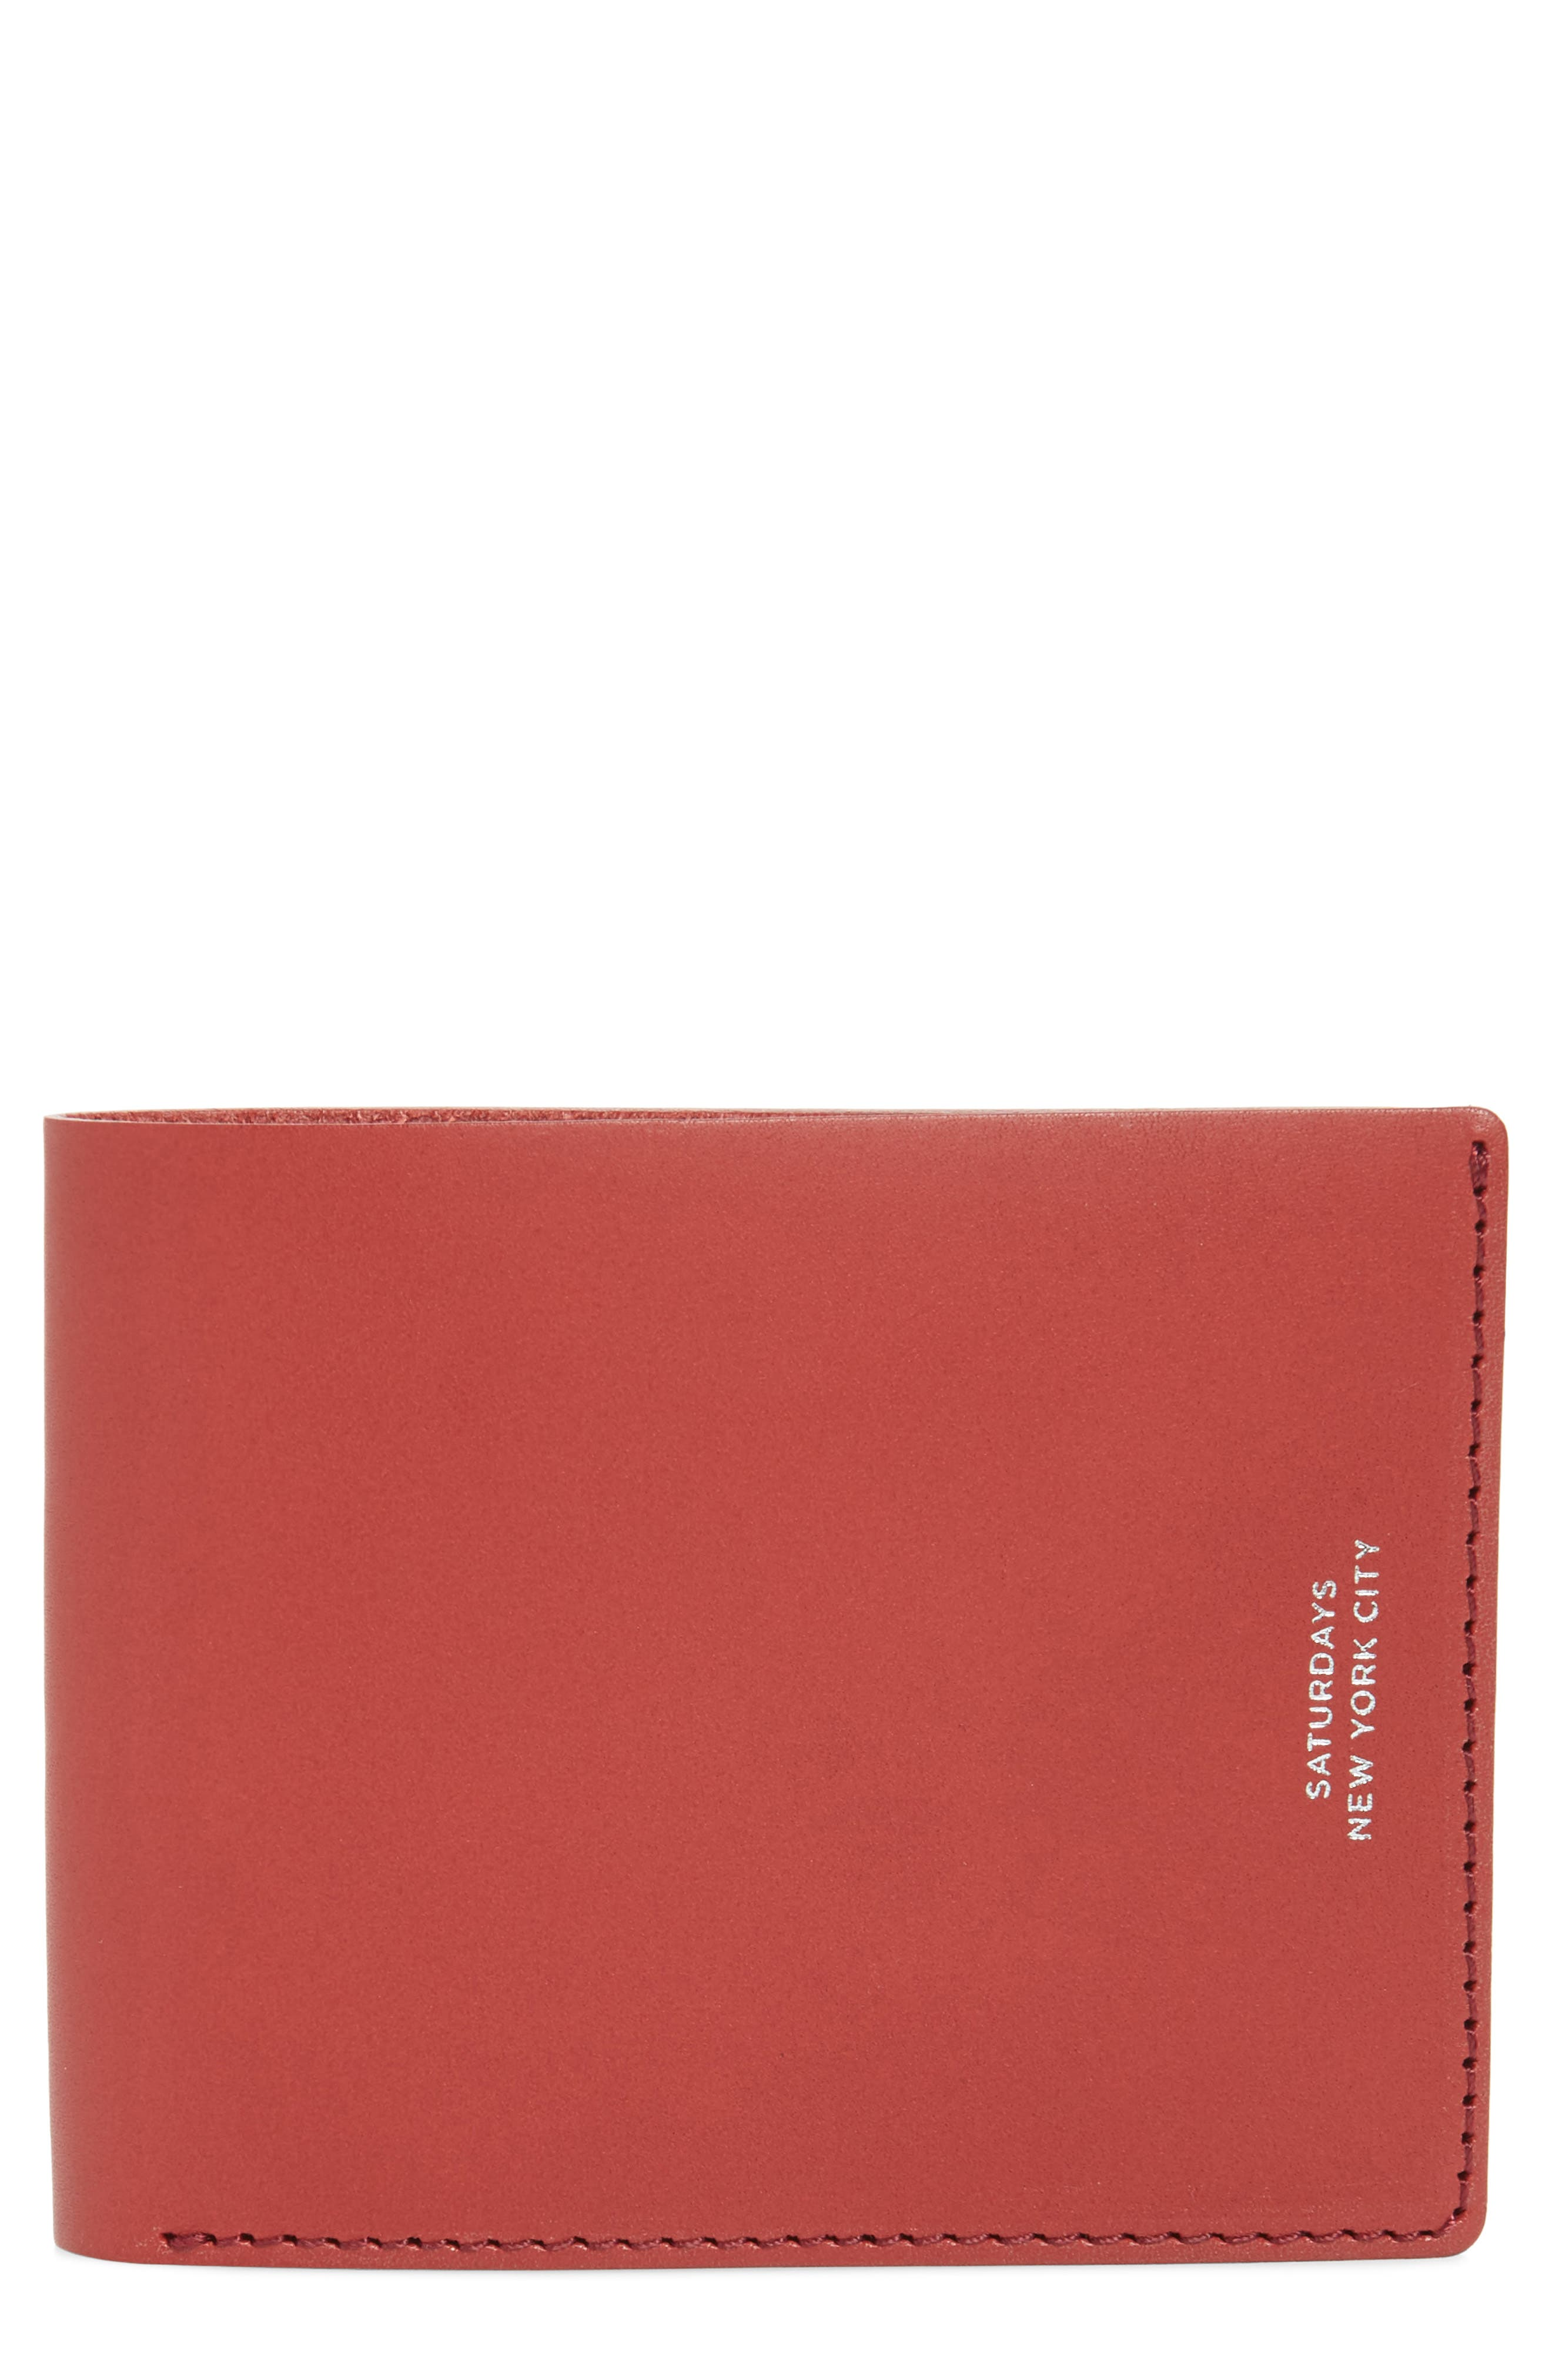 SATURDAYS NYC Bifold Leather Wallet, Main, color, TRUE RED